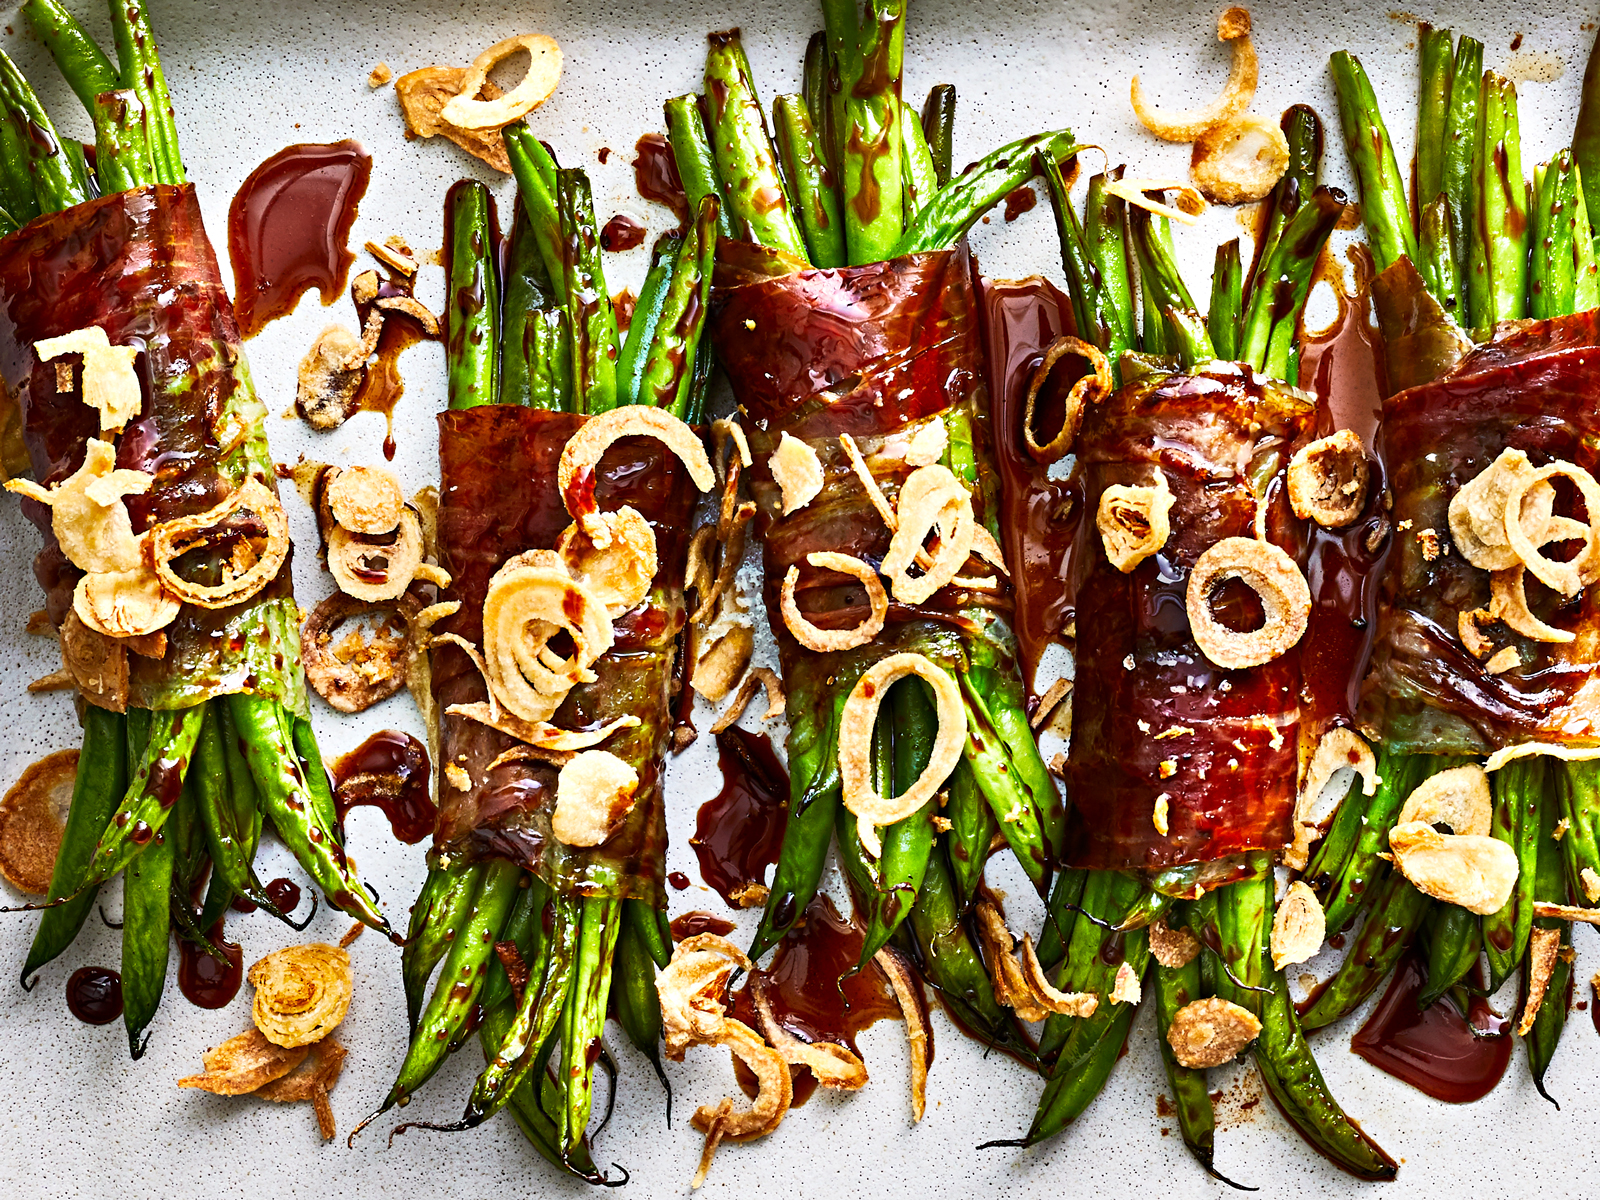 Speck-Wrapped Haricots Verts with Date Molasses Recipe